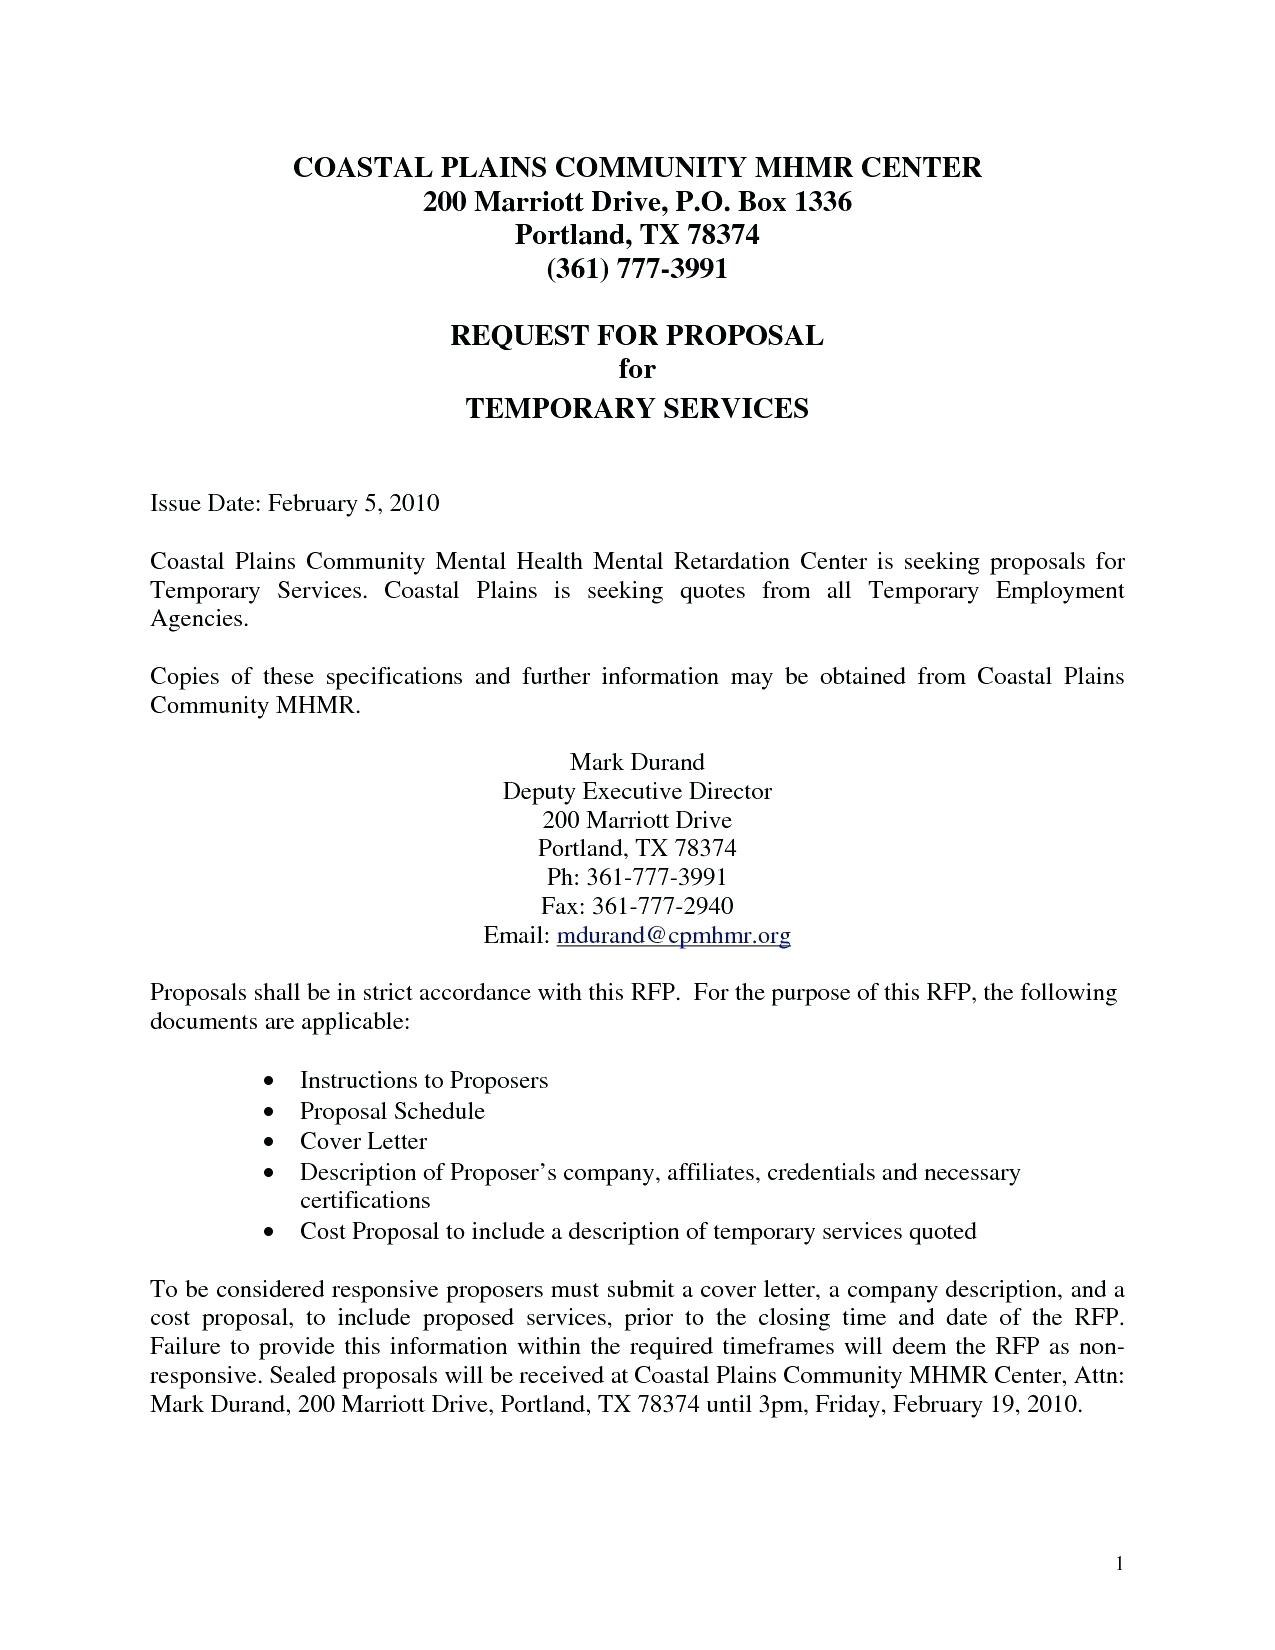 Insurance Ent Business Plan Template Ency Example Sample Simple For Recruitment Agency Business Plan Template